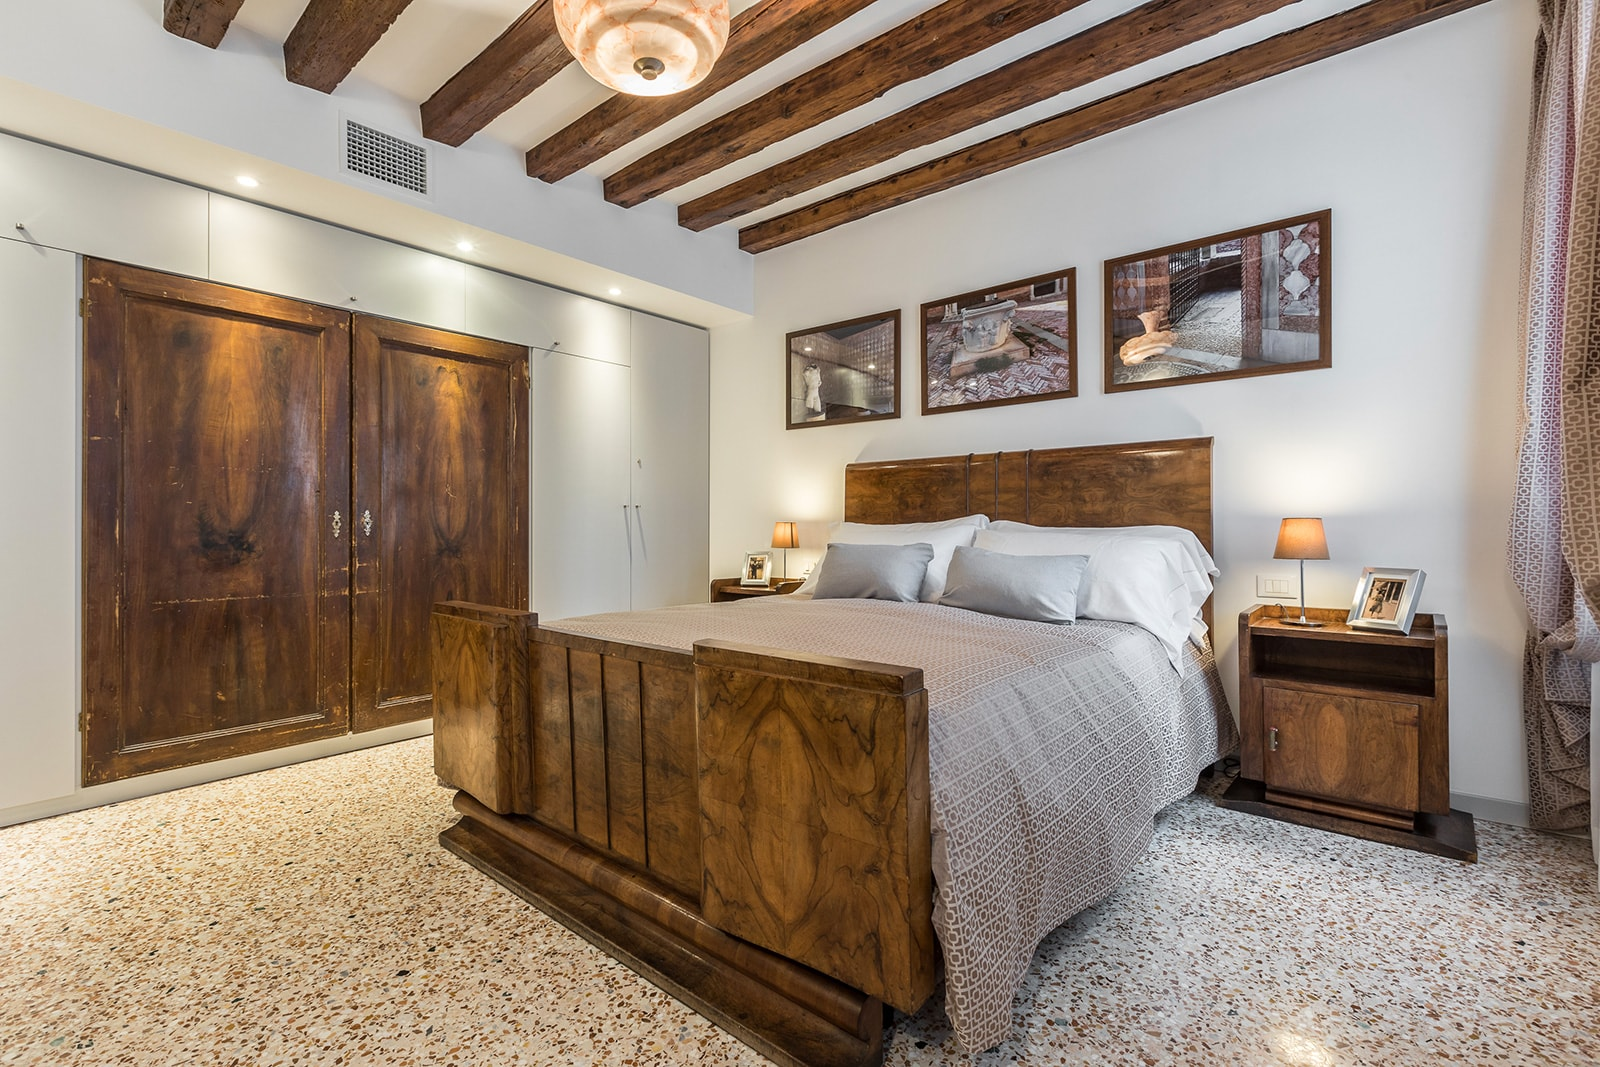 Property Image 2 - Venetian Apartment in Historic Castello District